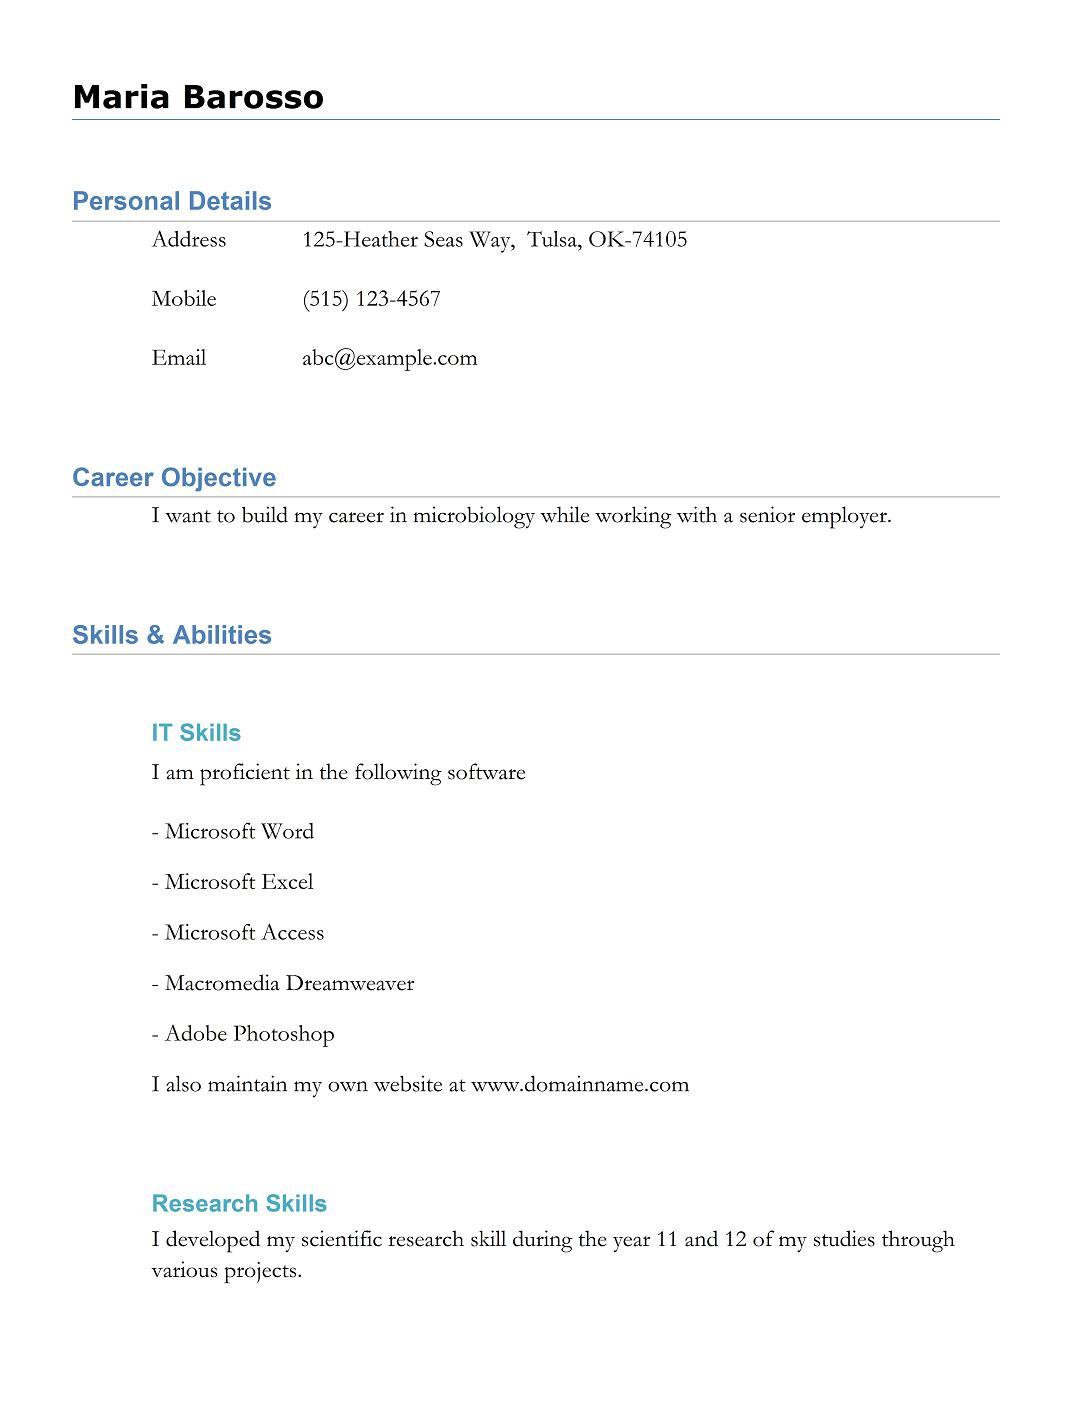 7 best executive resume samples for freshers - Hobbies In Resume For Freshers